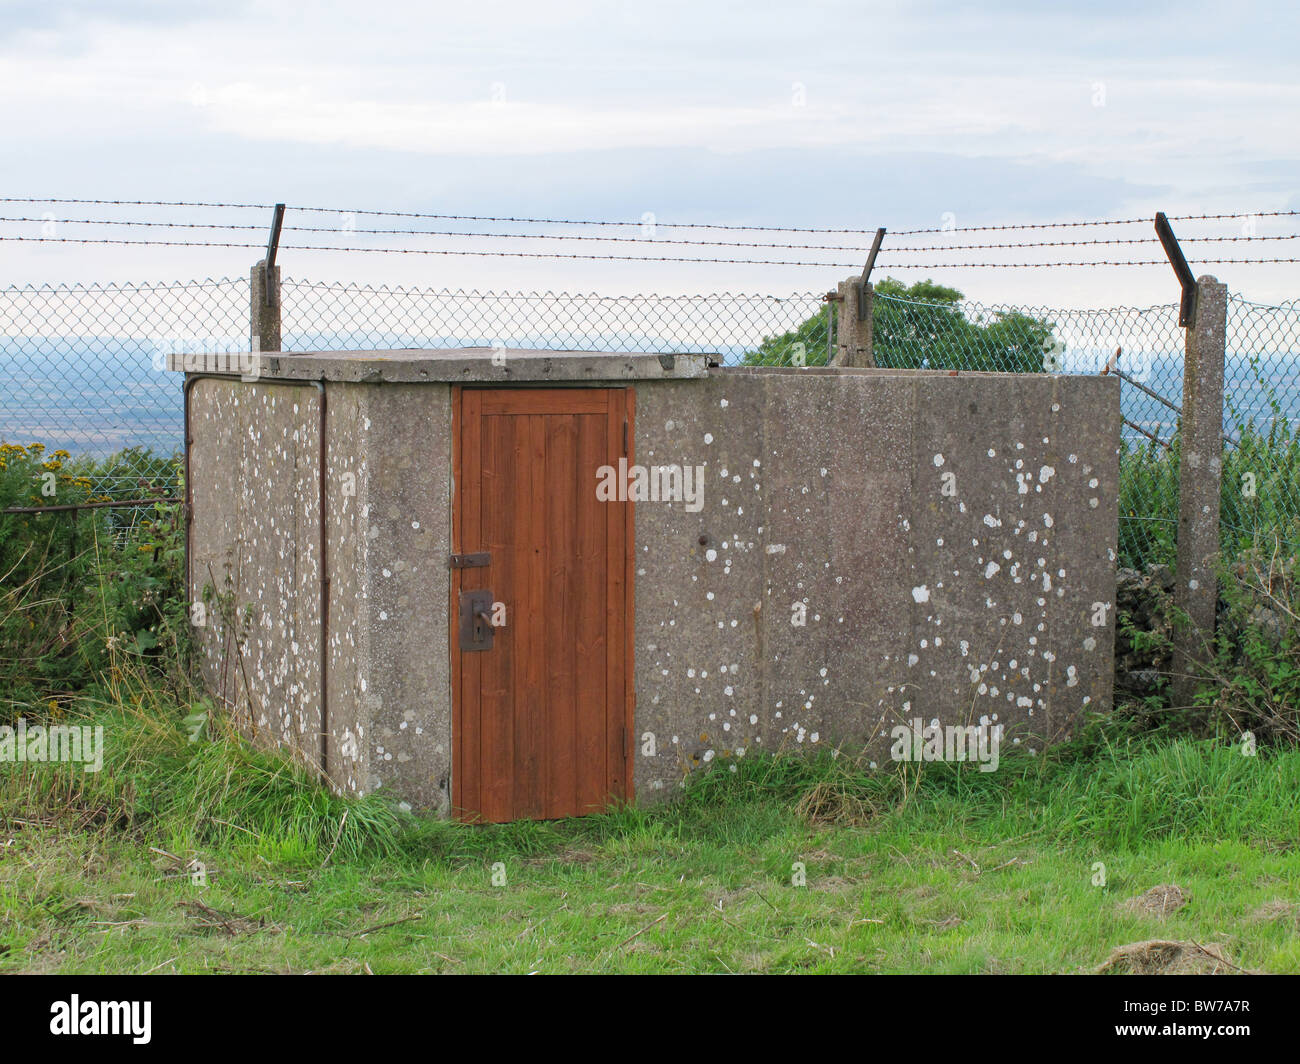 Orlit A Royal Observer Corps post, Broadway, Fish Hill, Worcestershire, England - Stock Image